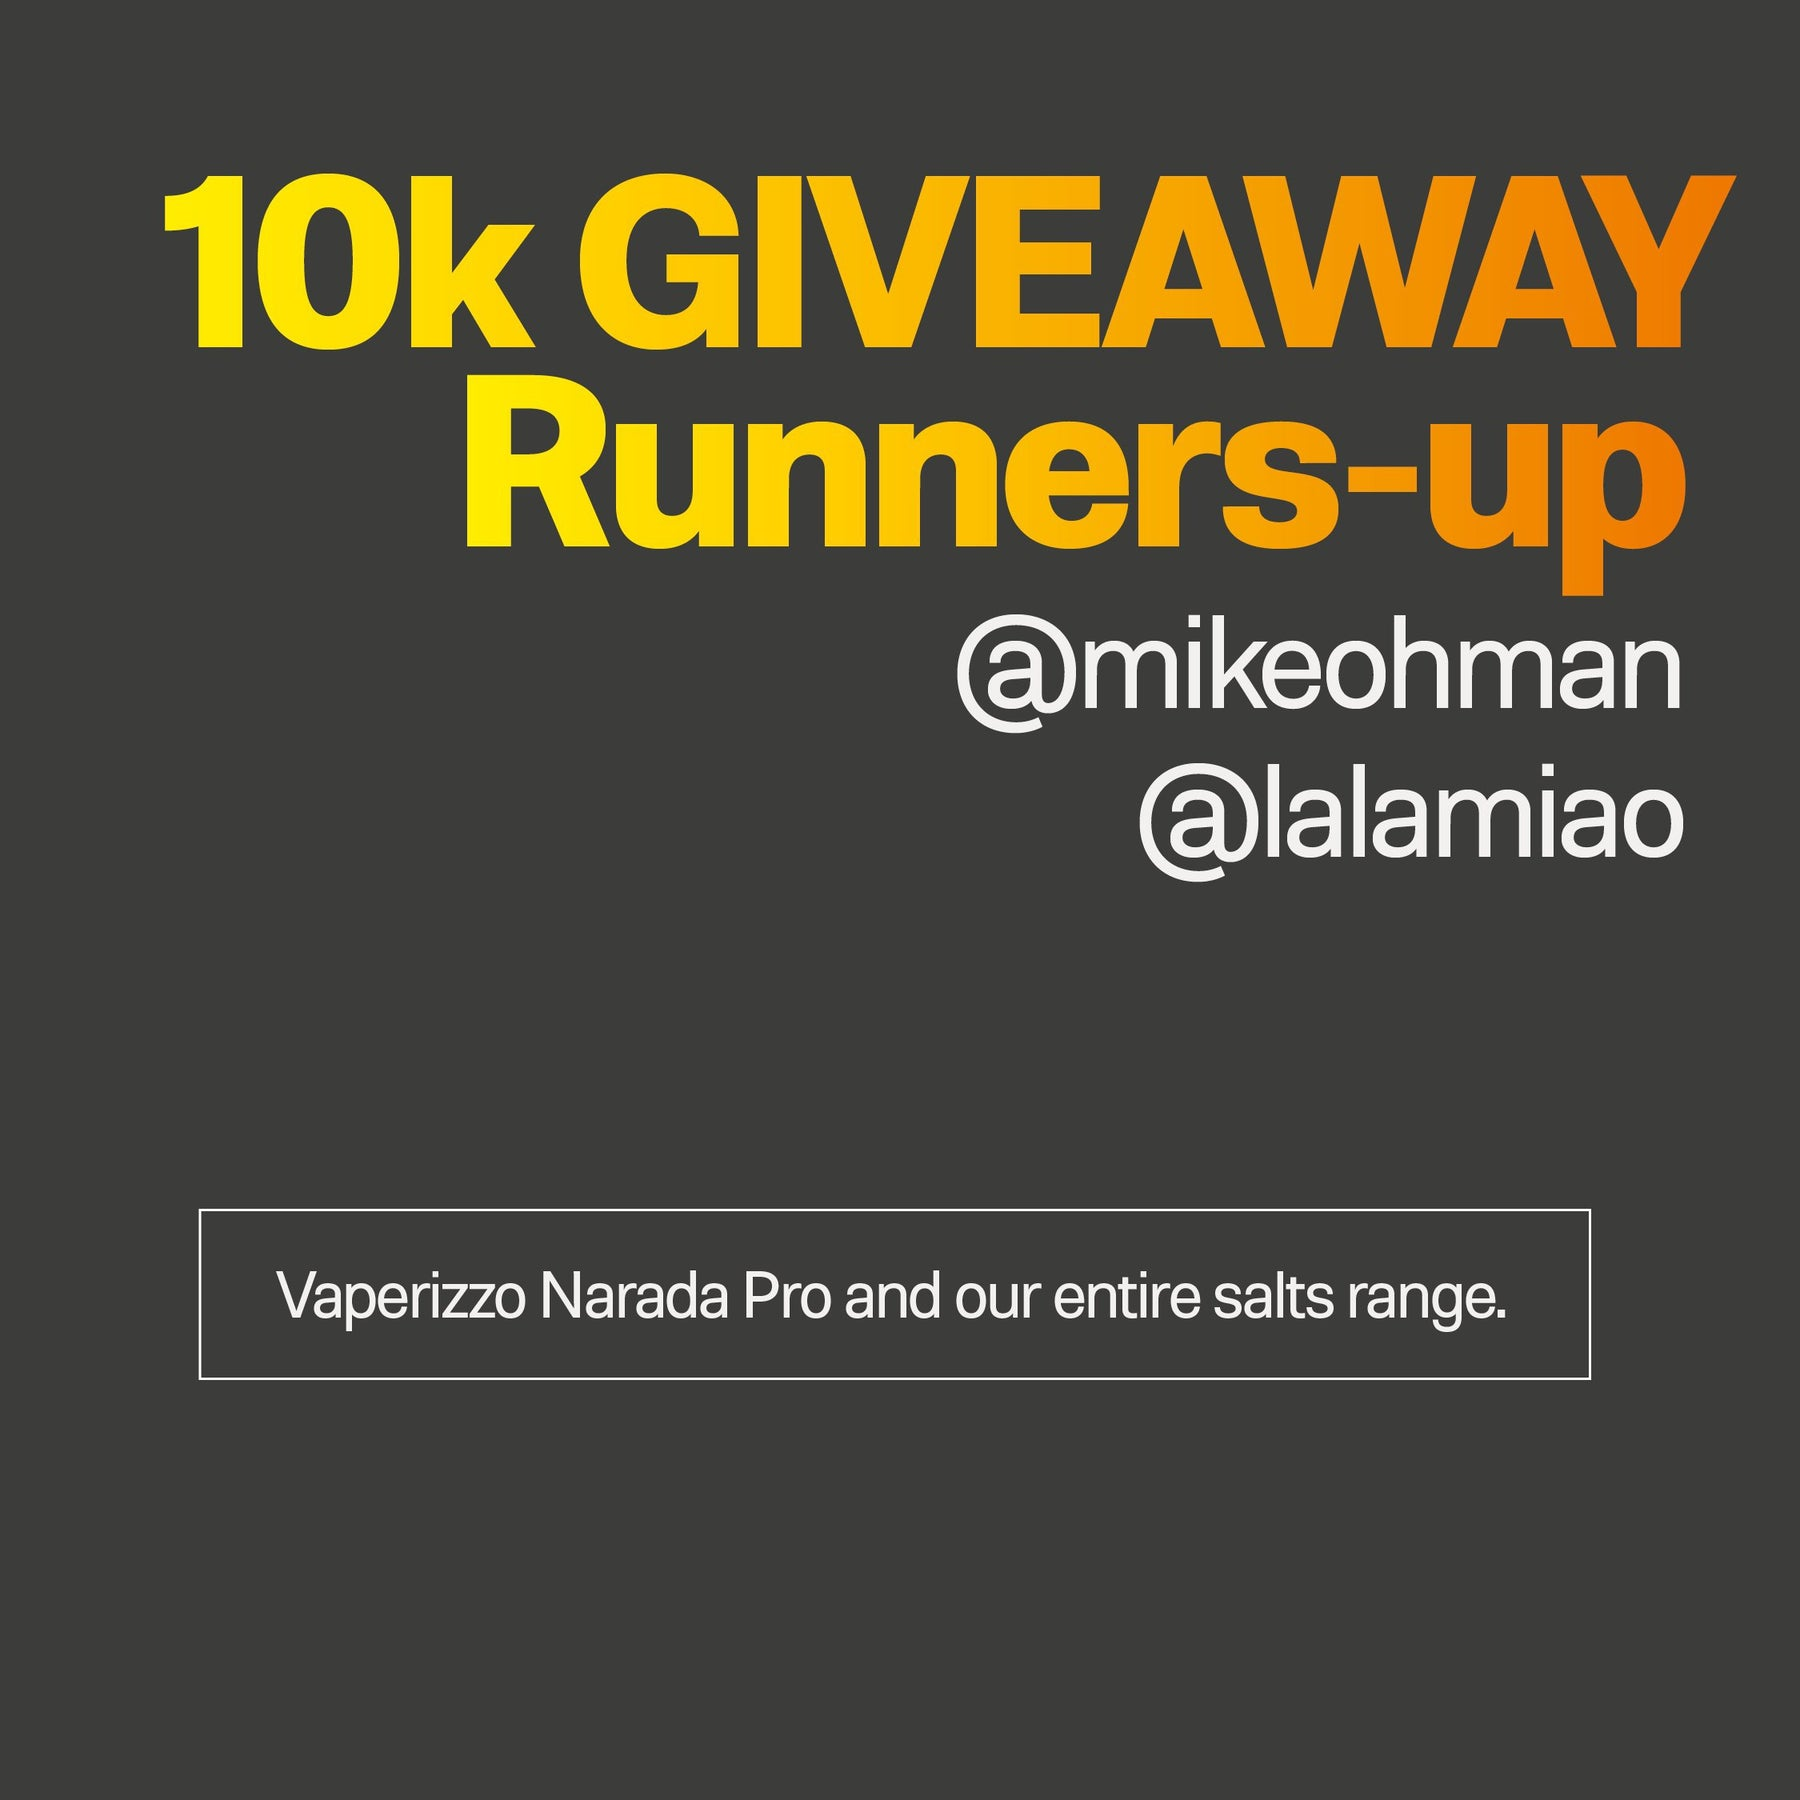 News-10k GIVEAWAY Runners-up | We Are Supergood.